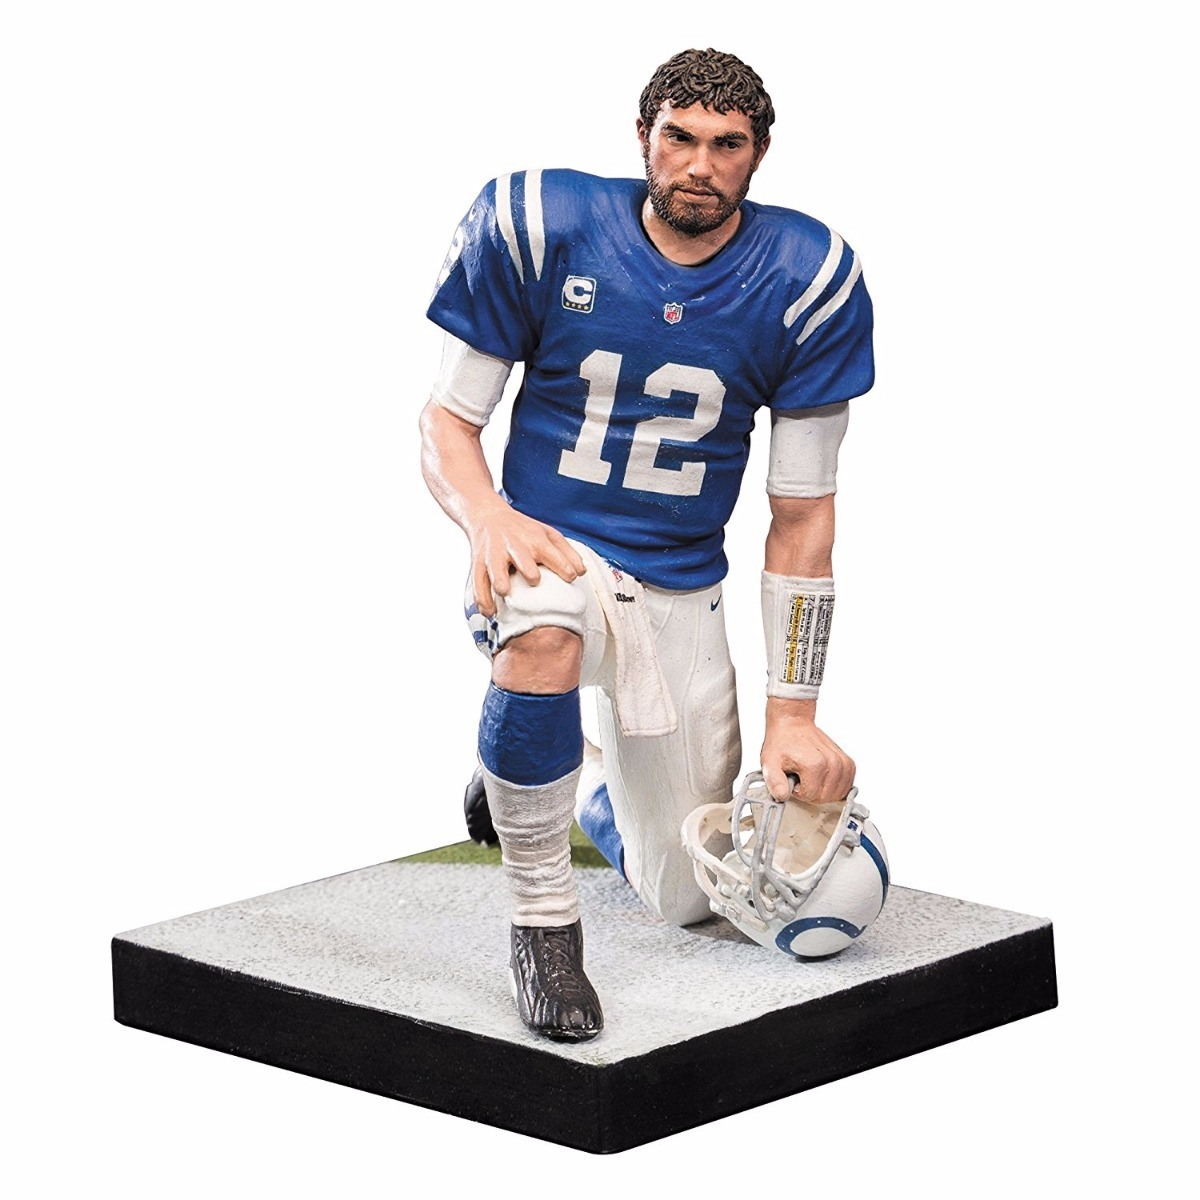 Mcfarlane Toys Nfl Series 36 Andrew Luck Indianapolis Colts ... 5a41d038b61